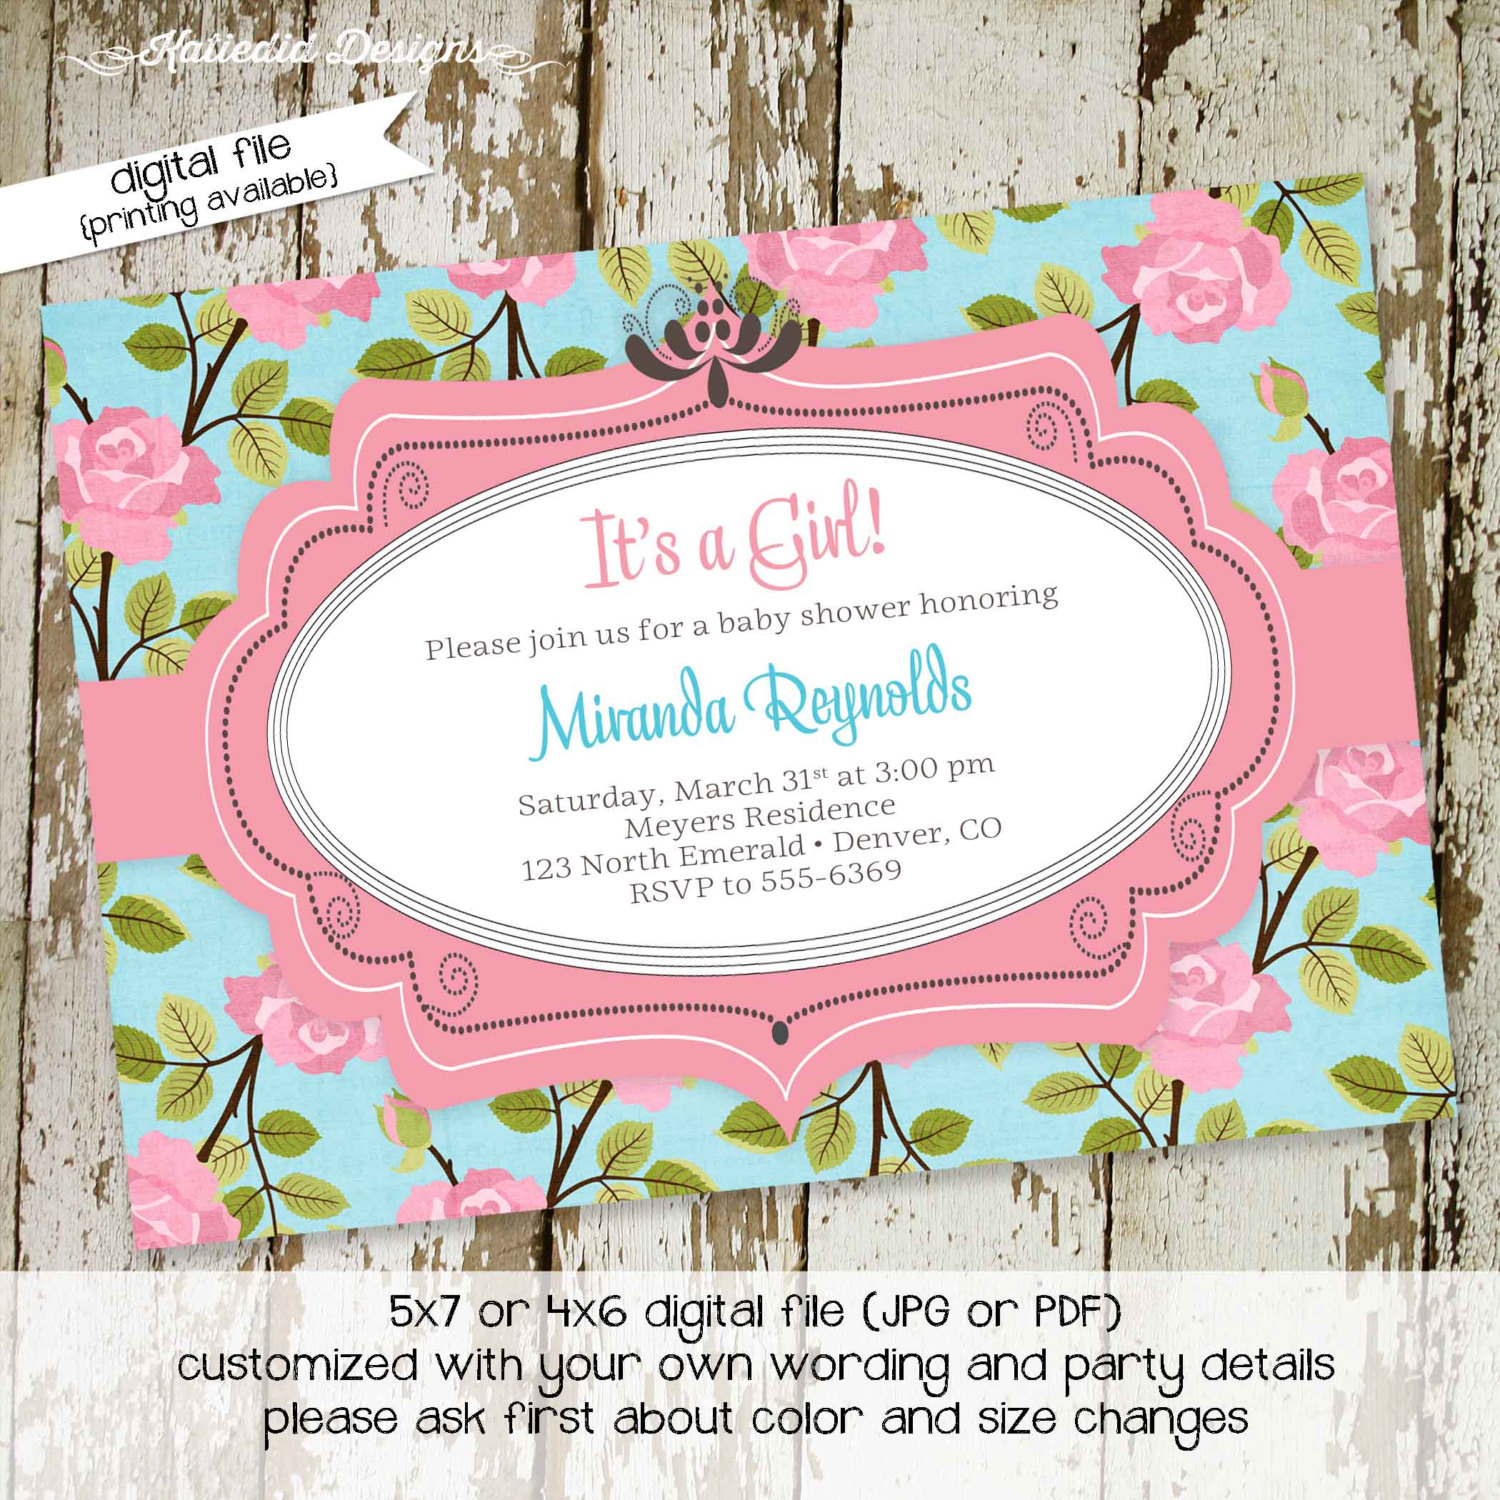 Especial Floral Baby Shower Invitation Sprinkle By Katiedid Designs On Zibbet Baby Girl Shower Invitations Online Baby Girl Shower Invitations Wording baby shower Baby Girl Shower Invitations